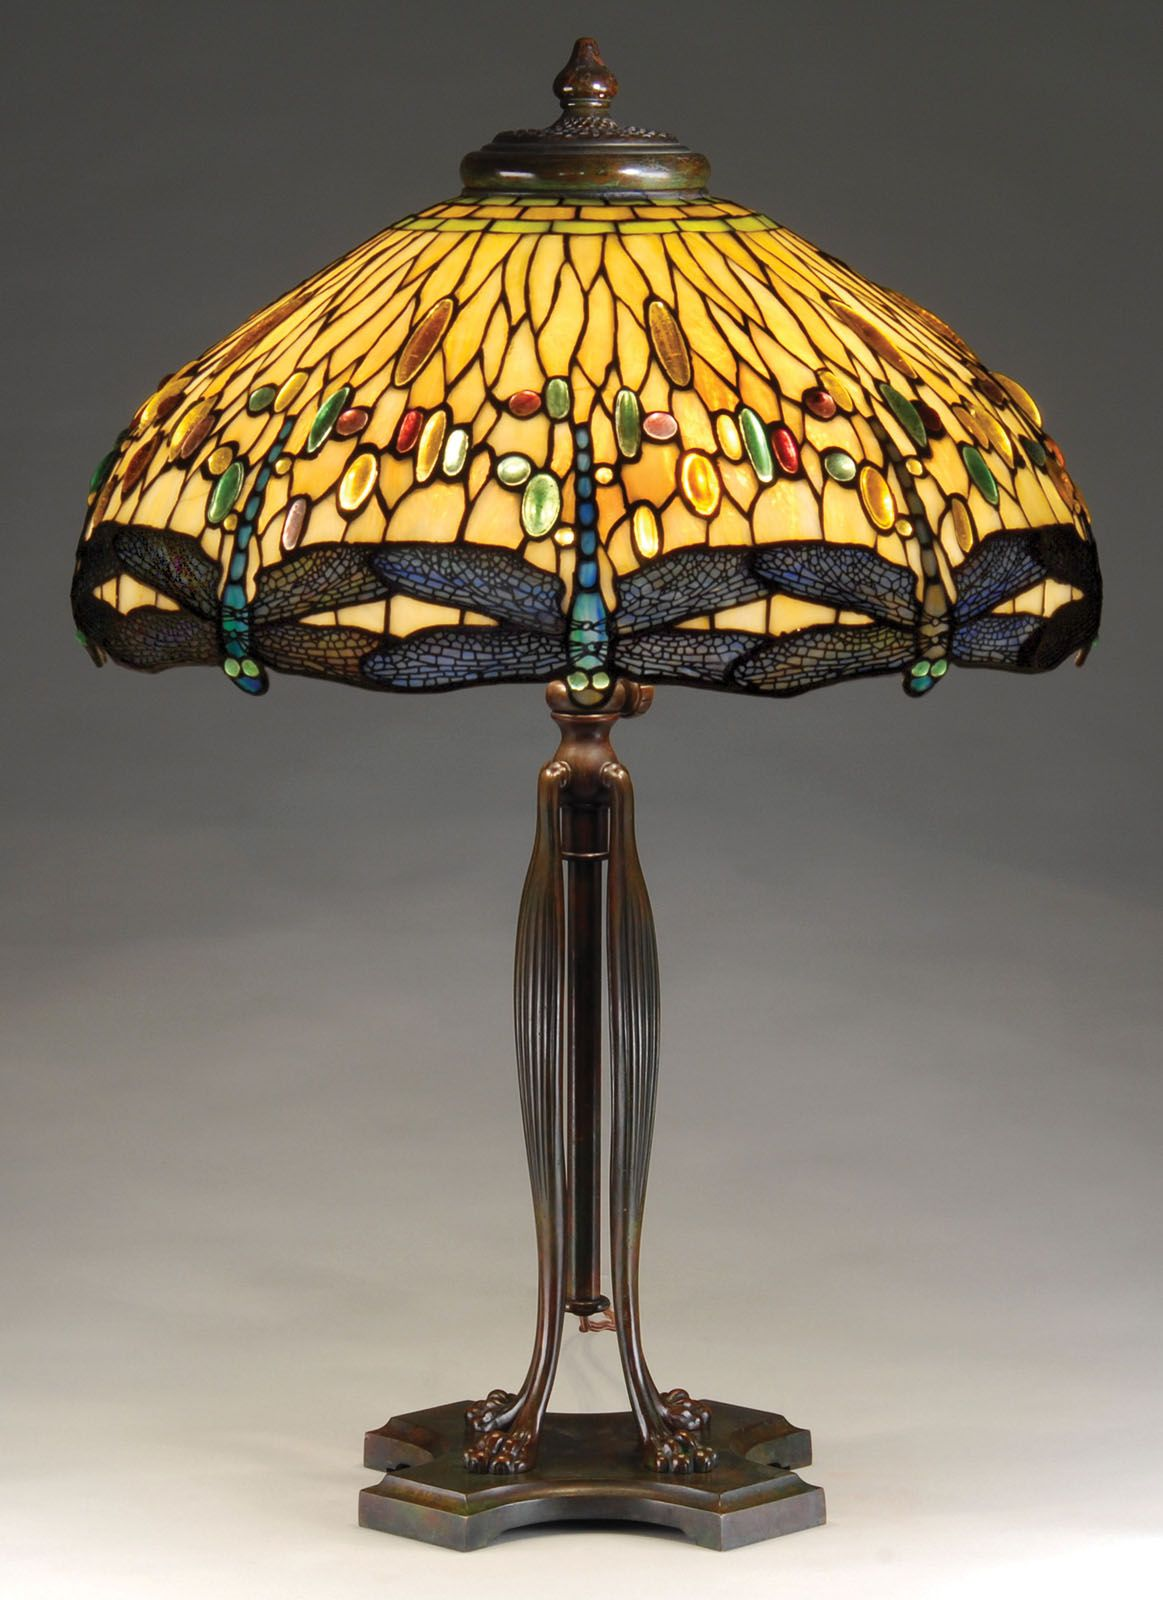 Lamp Glas In Lood Tiffany S Lamps Bought Myself A Red One Of These